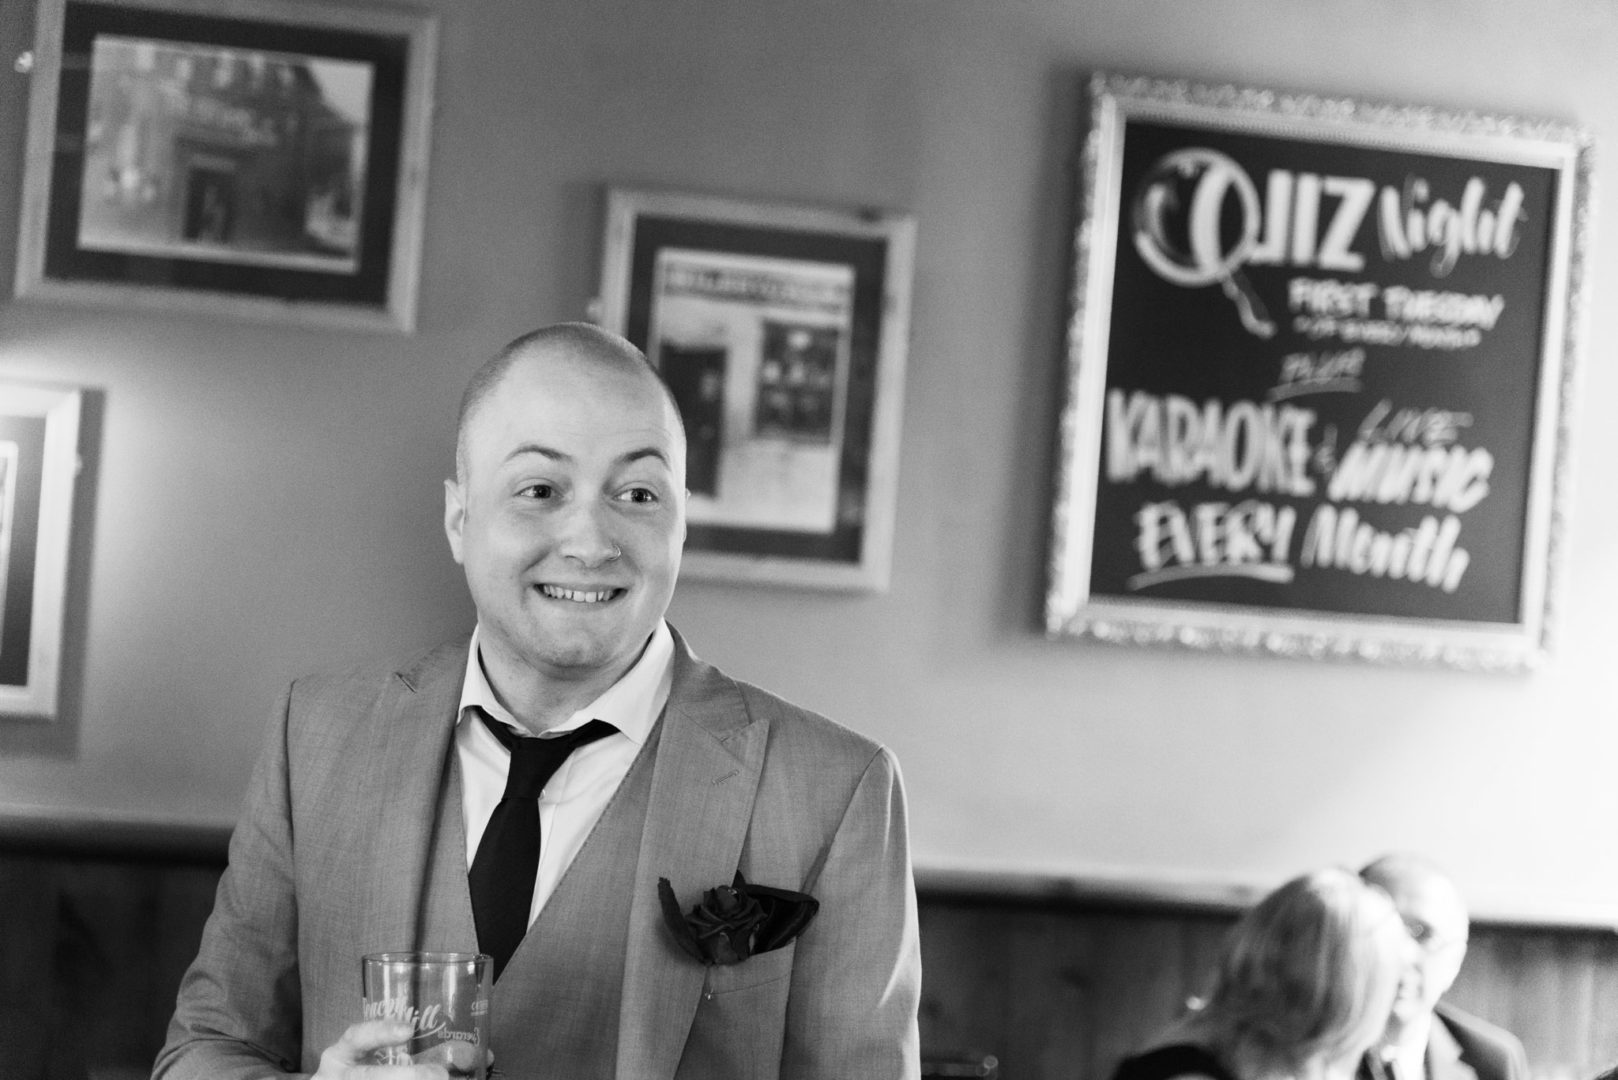 Nuneaton wedding photographer AJTImages at The Free Trade Inn in Sileby